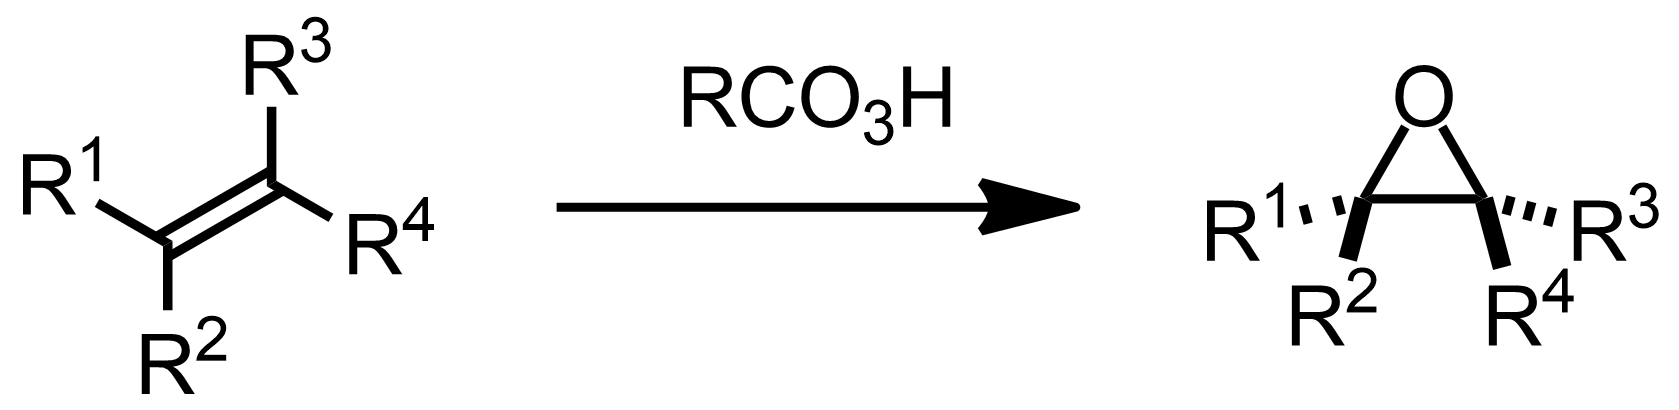 Schematic representation of the Prilezhaev Reaction.